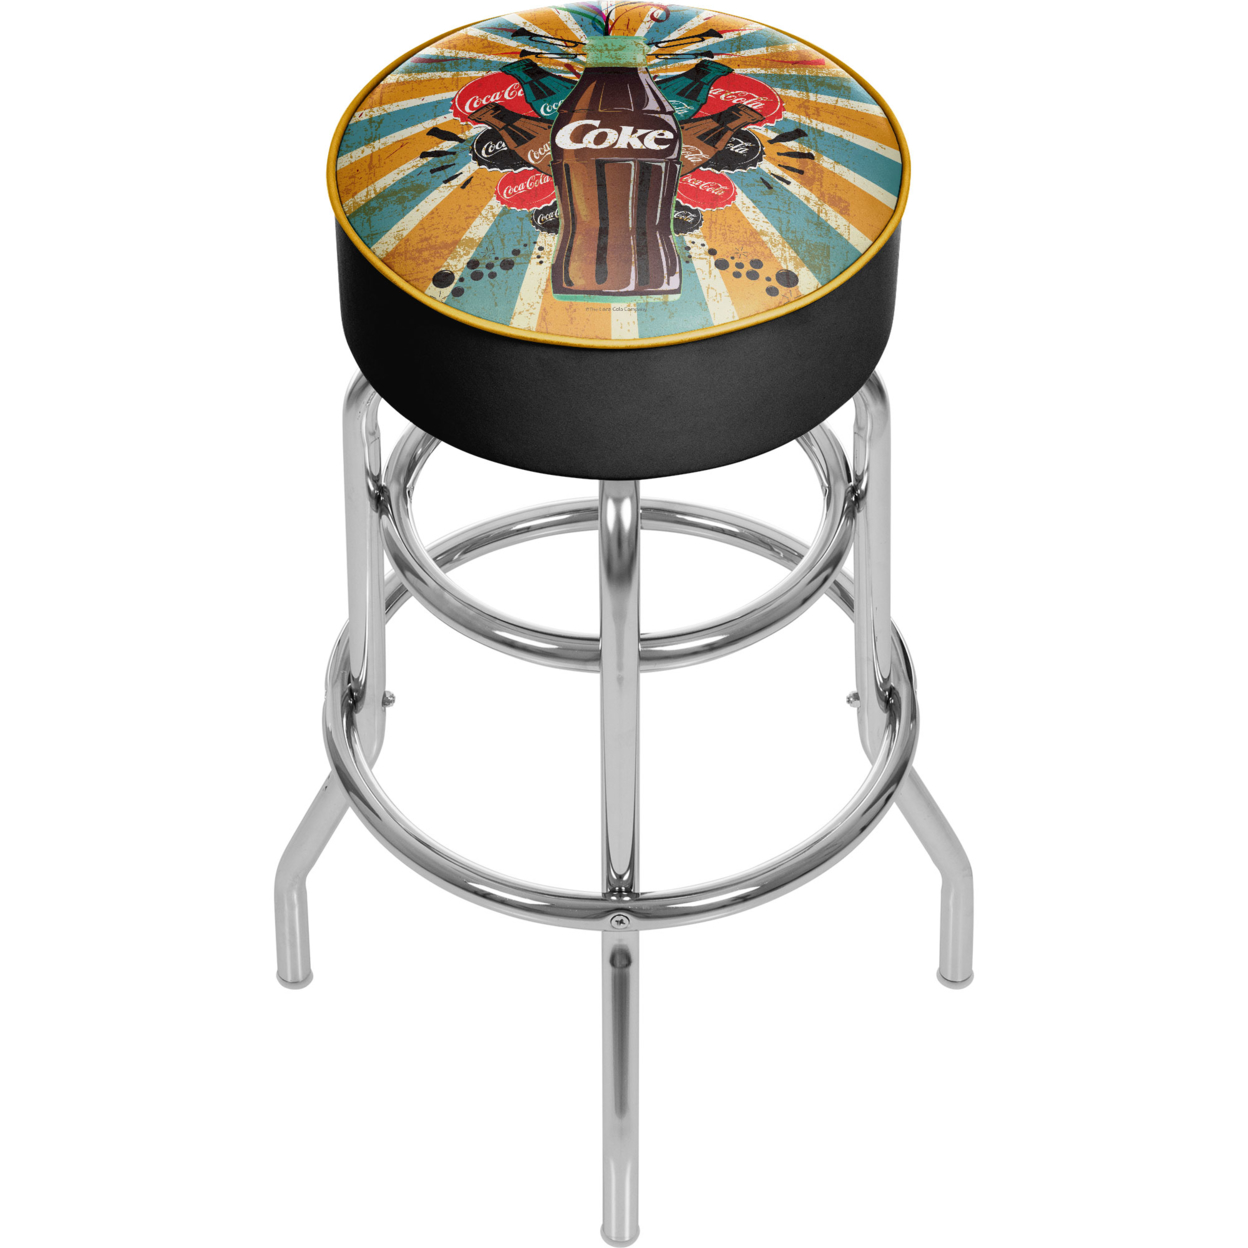 Coca Cola Brazil Color Splash Coke Bottle Padded Swivel Bar Stool 30 Inches High ...